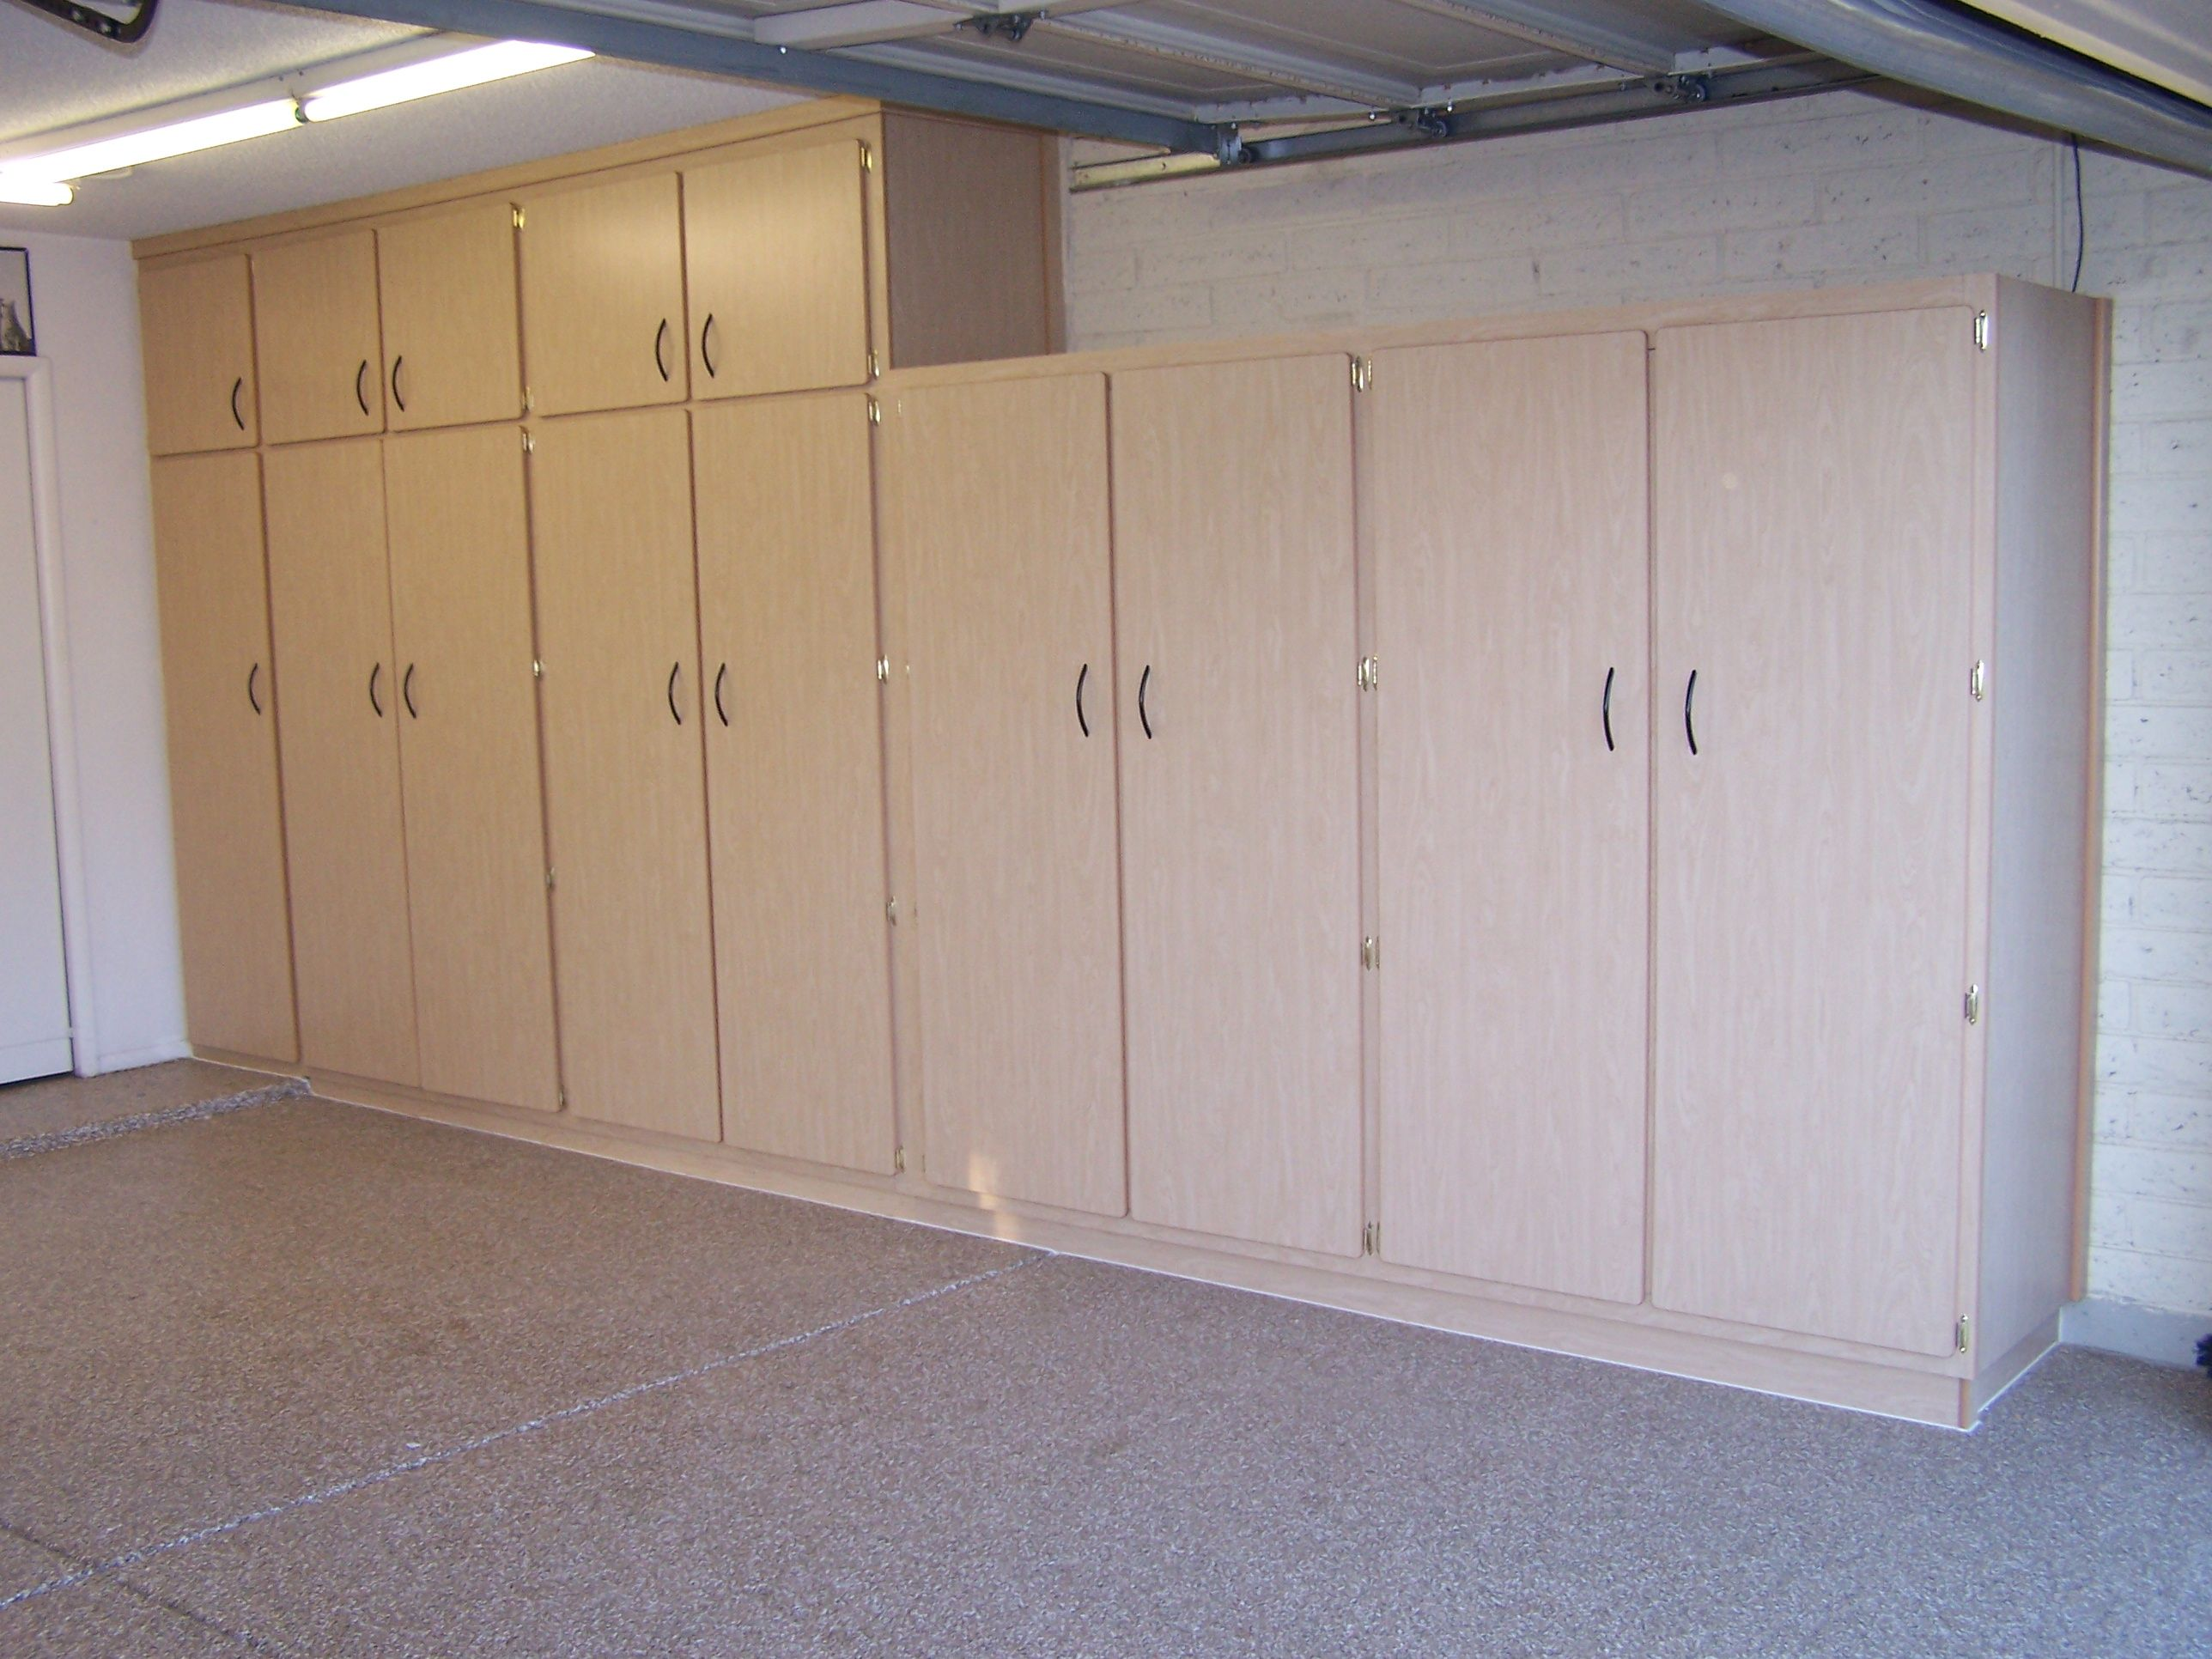 Garage storage cabinets plans toys and even clothes in this ...